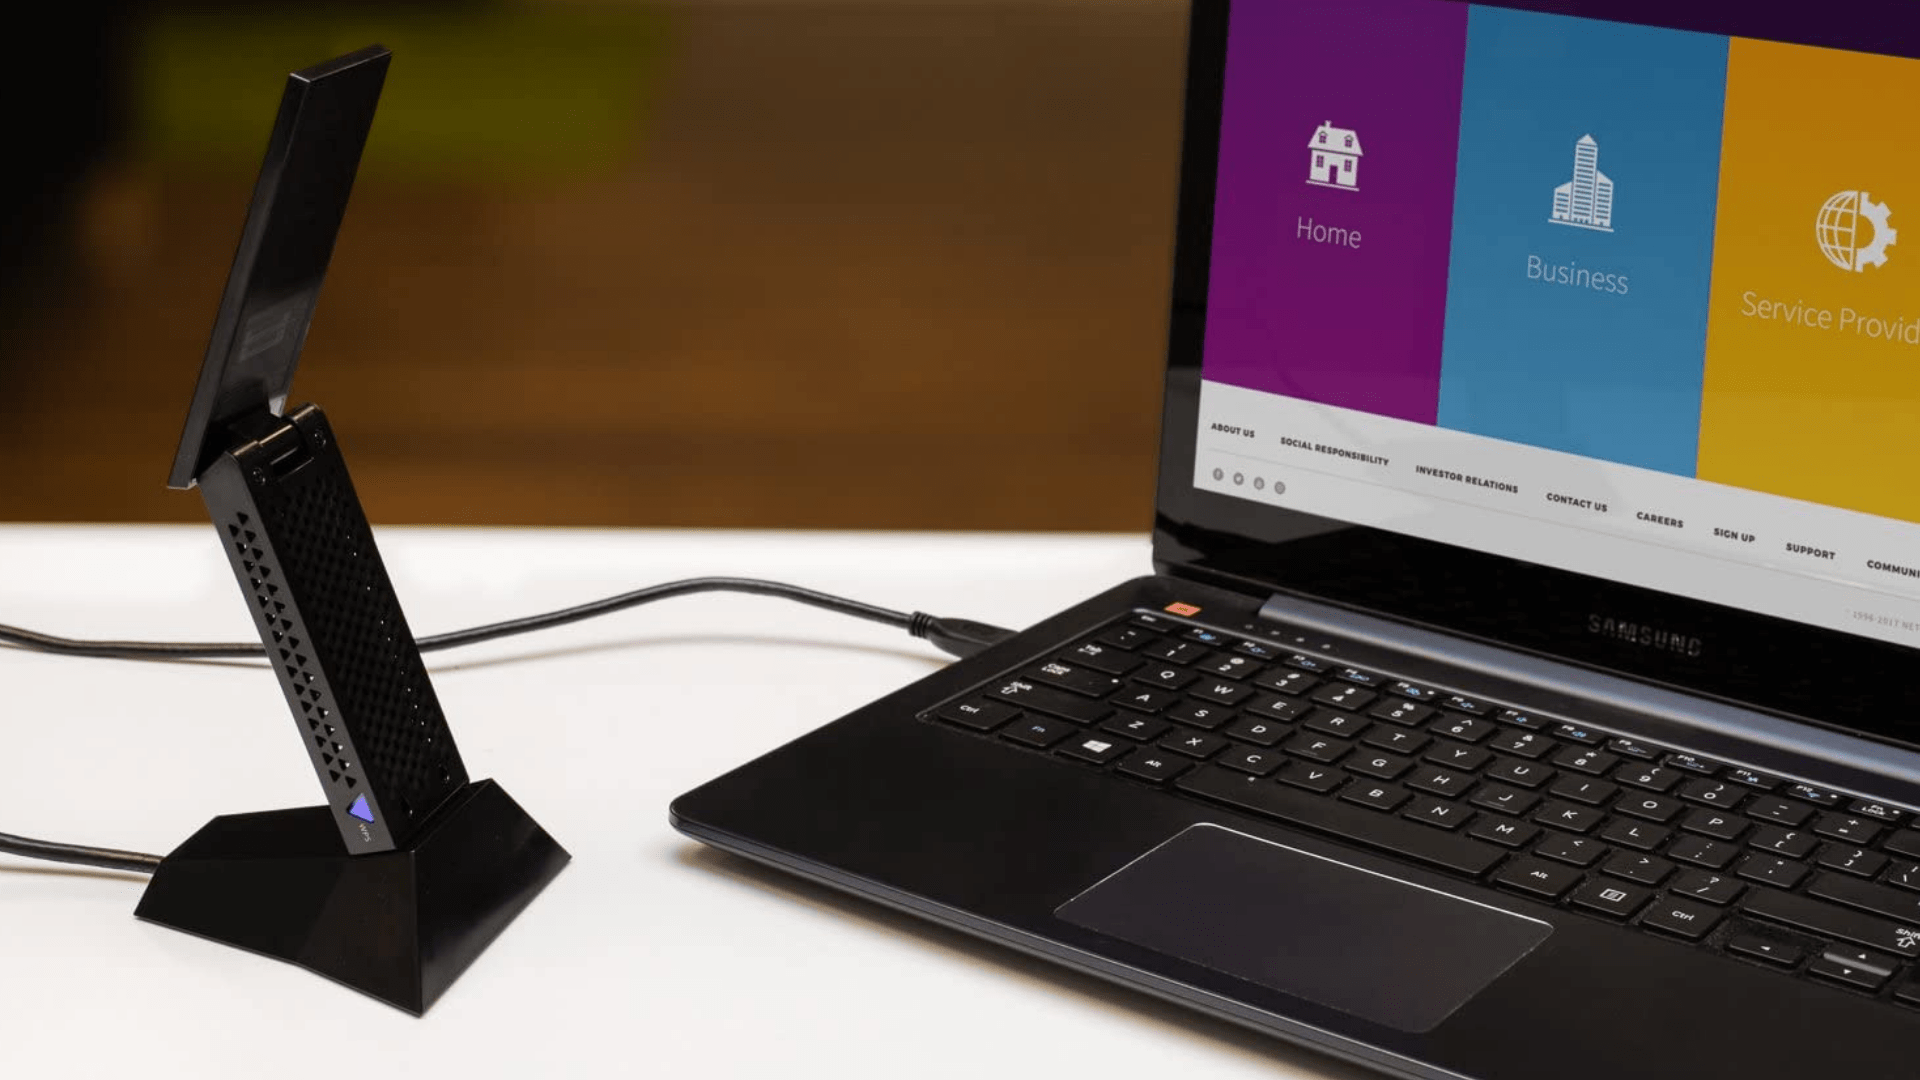 The Netgear Nighthawk A7000 USB WiFi Adapter is connected to a Samsung laptop